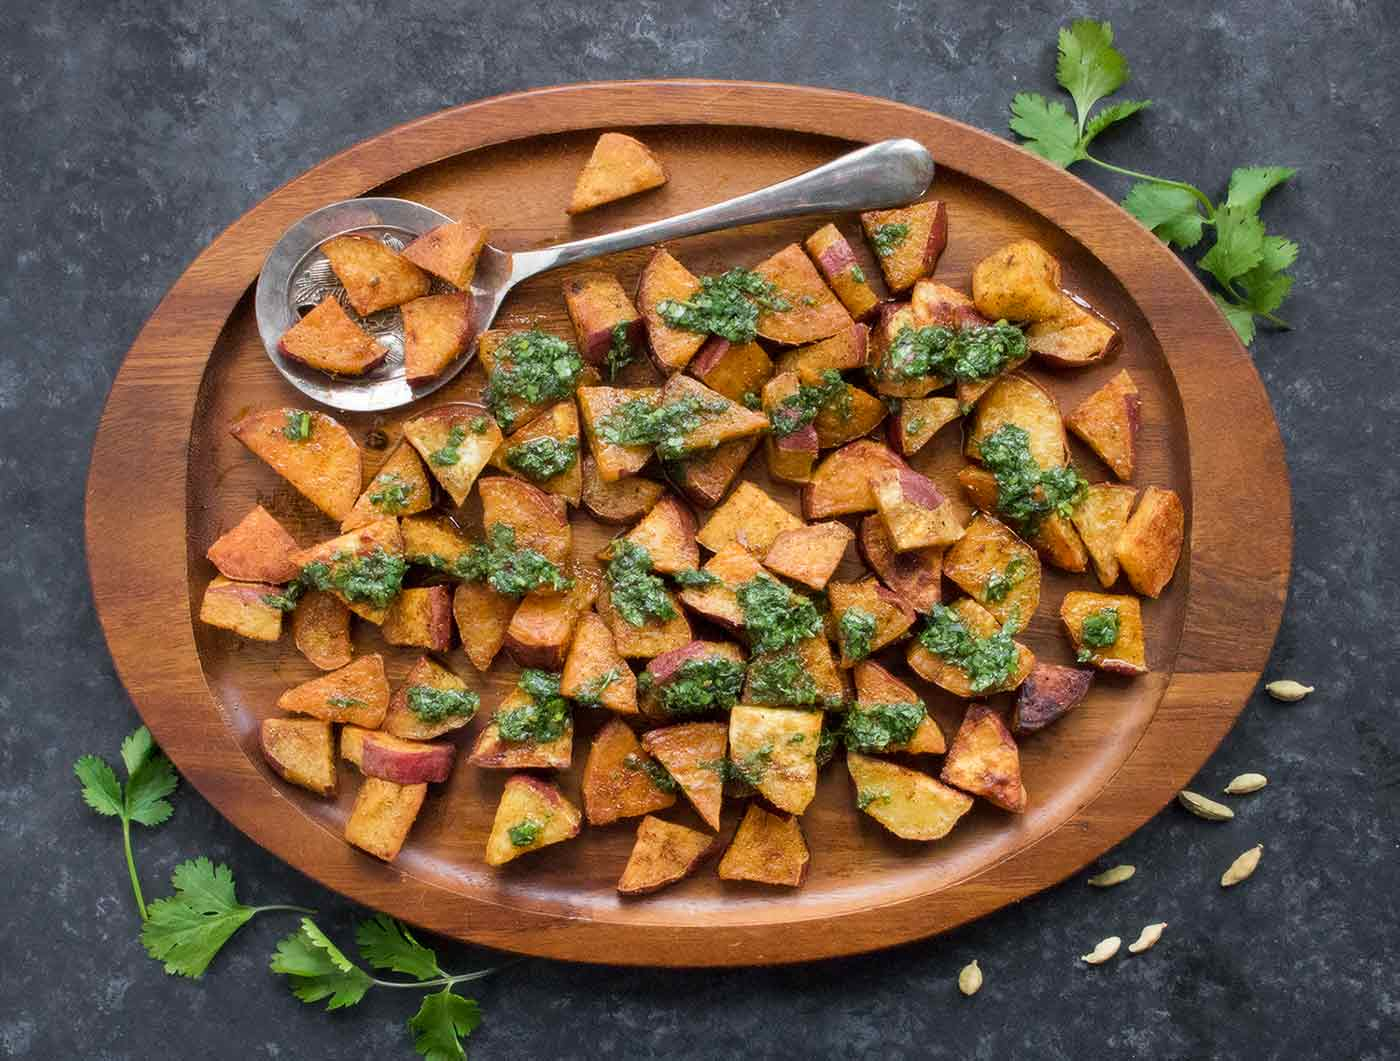 Platter filled with spiced sweet potatoes.